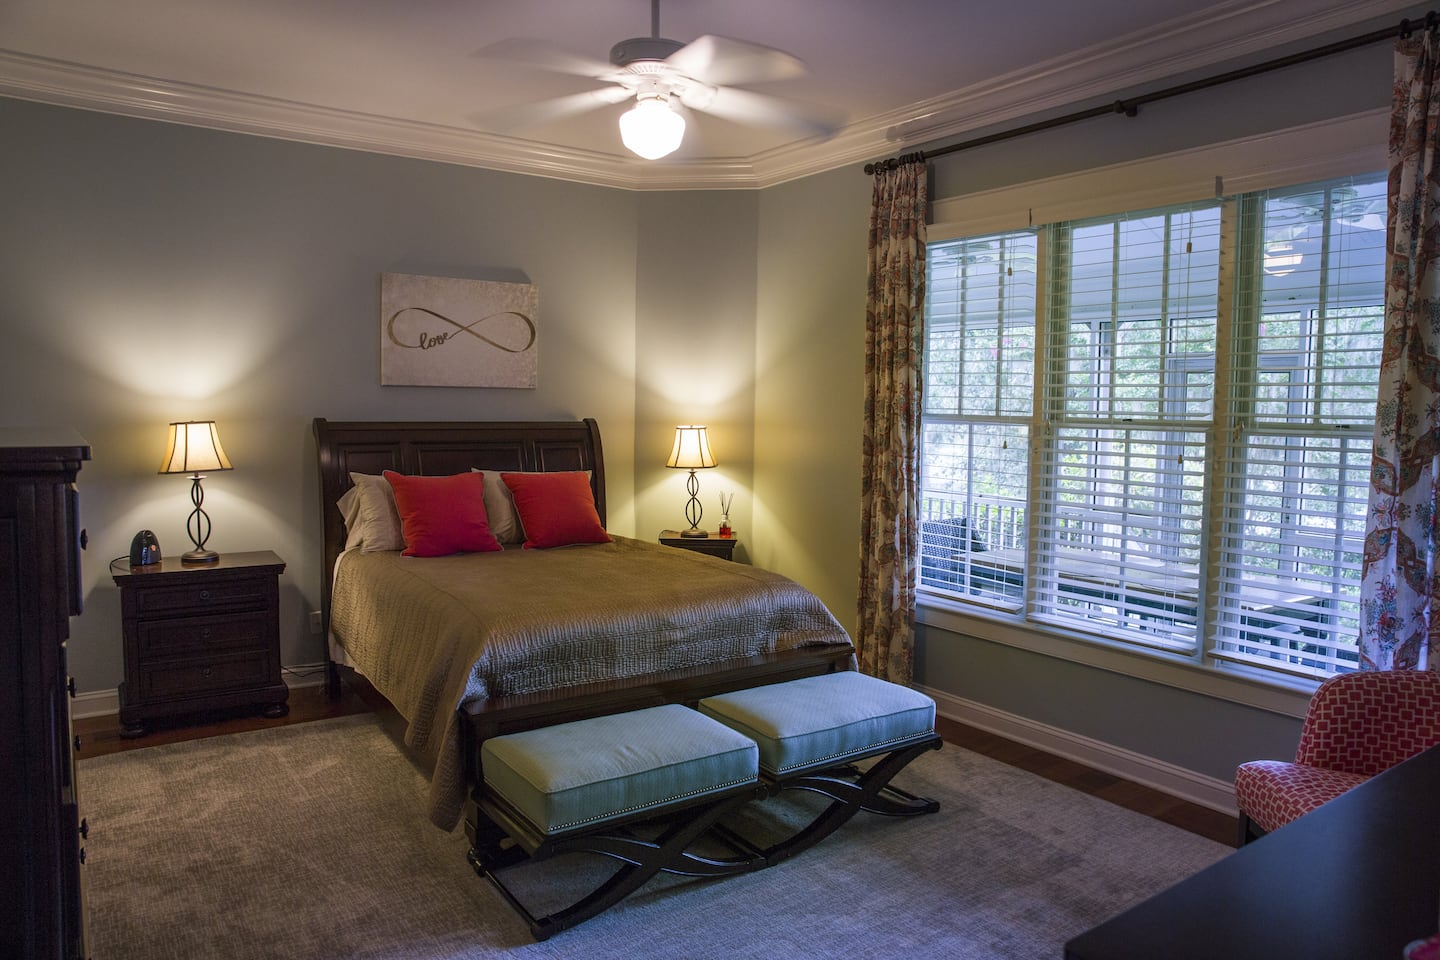 Southern style master bedroom with ceiling fan and lamps